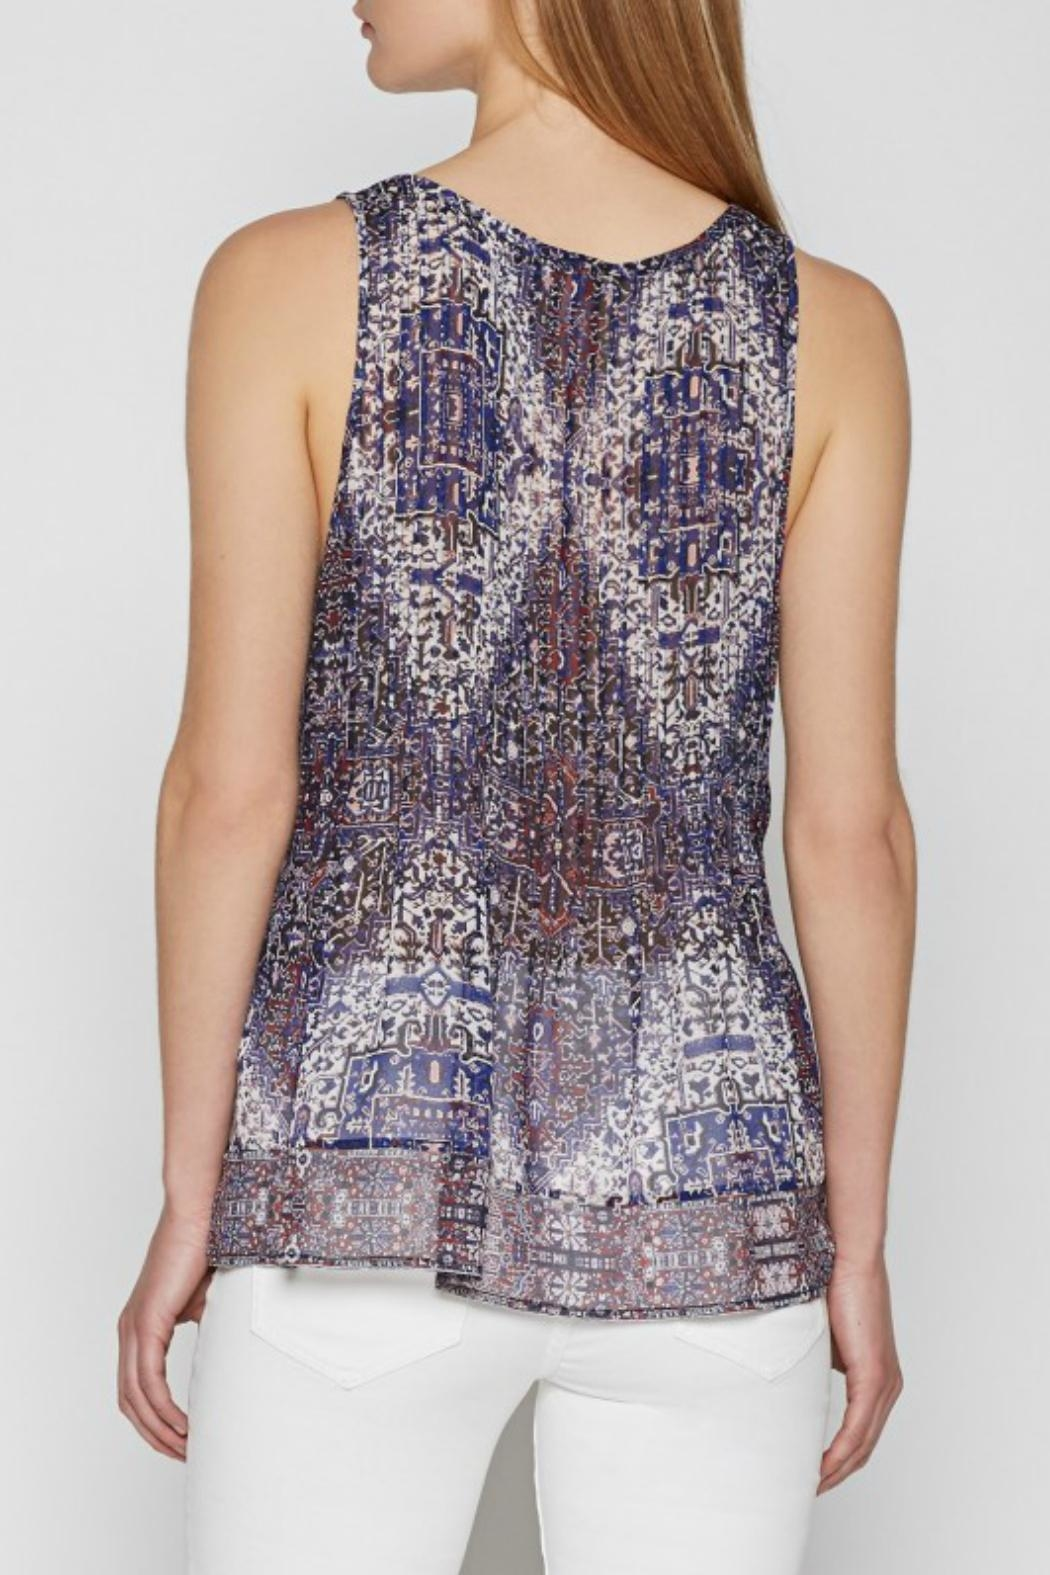 Joie Gretel B Tank Top - Front Full Image